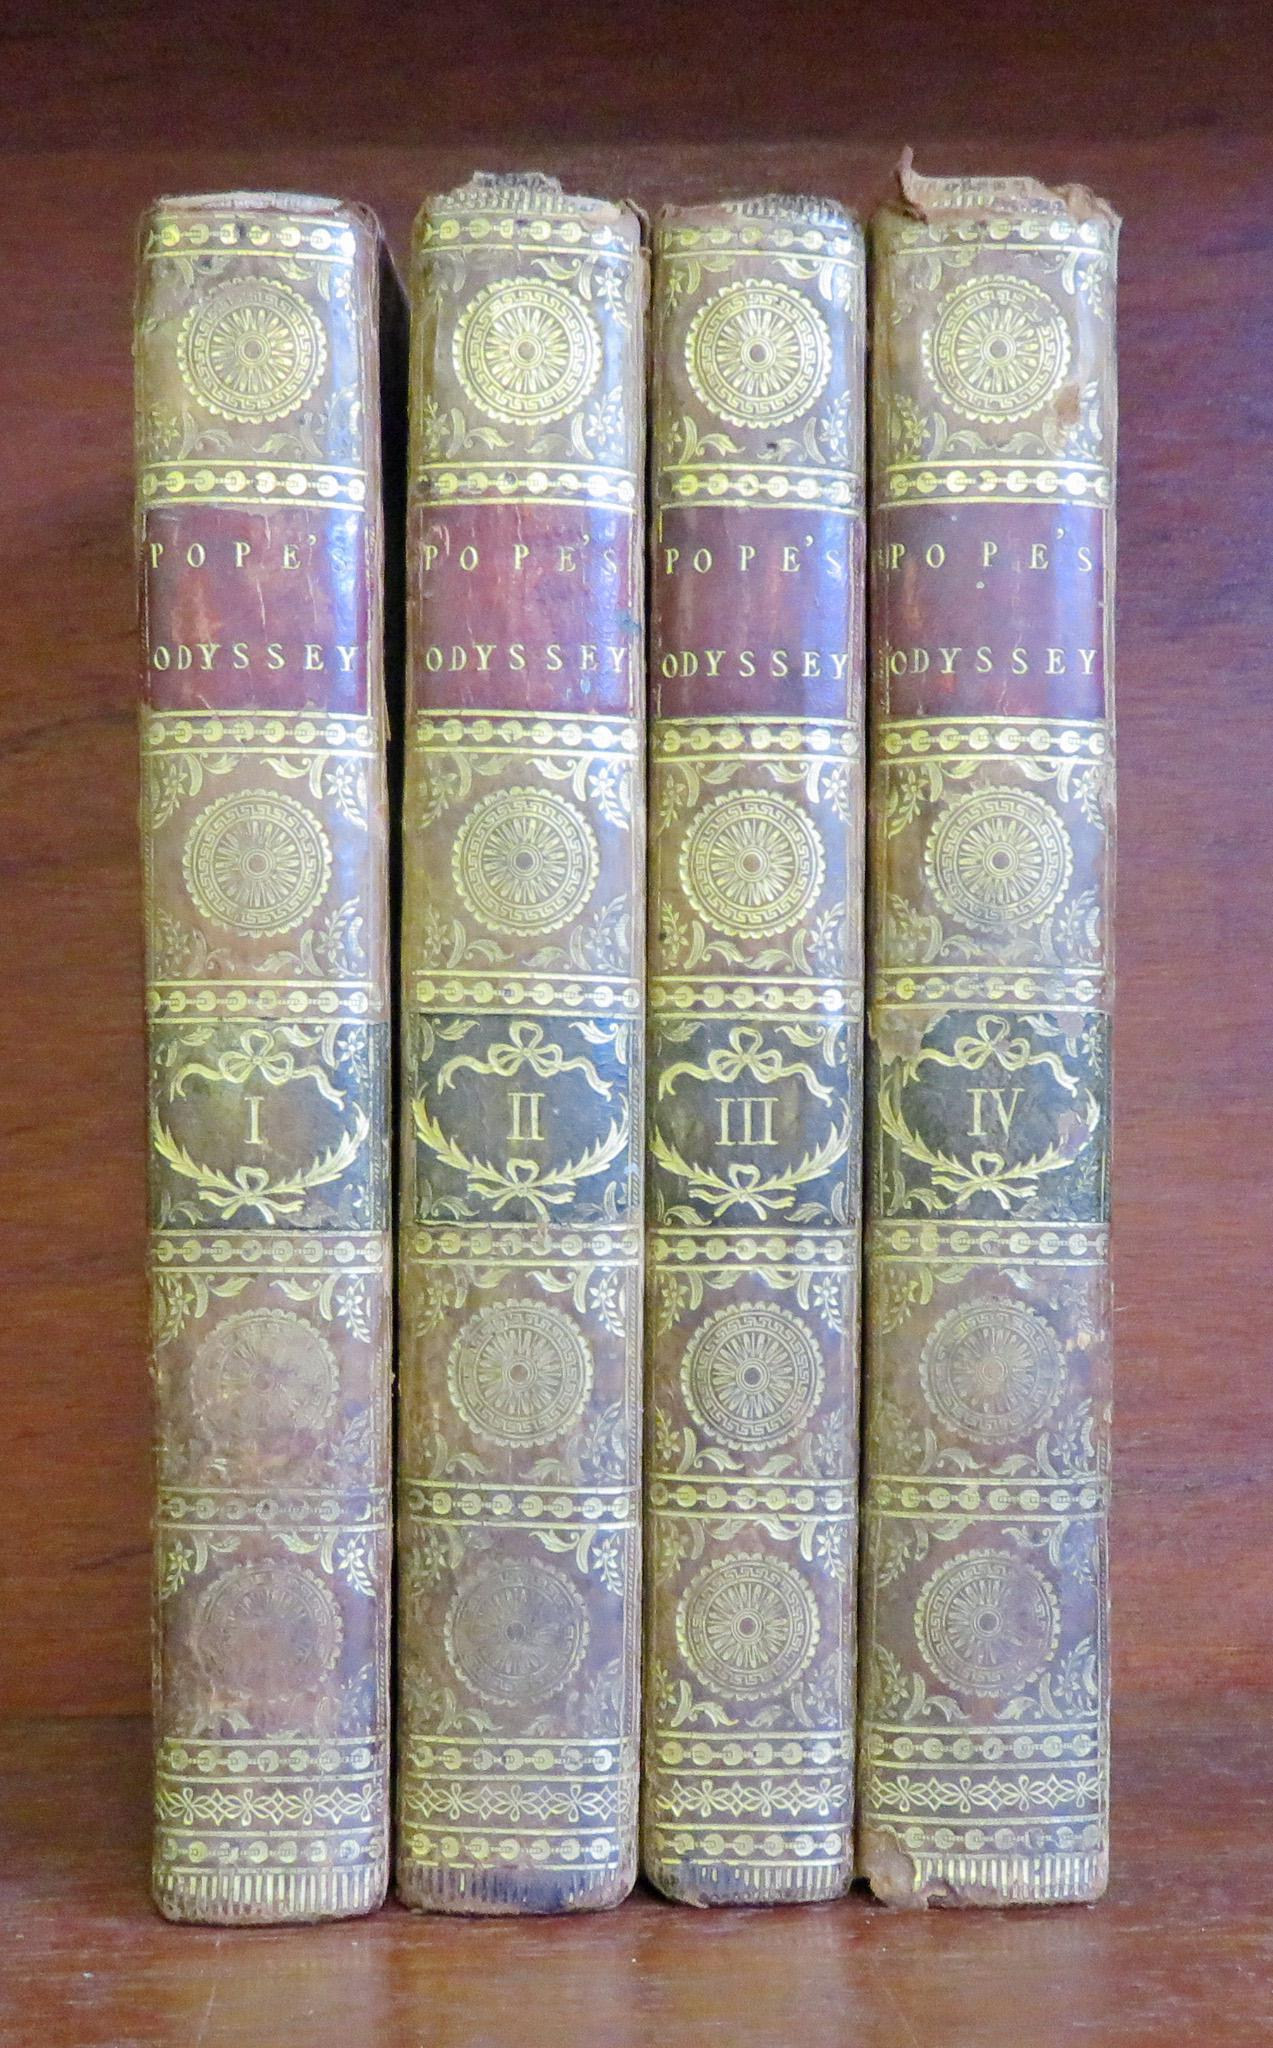 The Odyssey of Homer in Four Volumes Complete